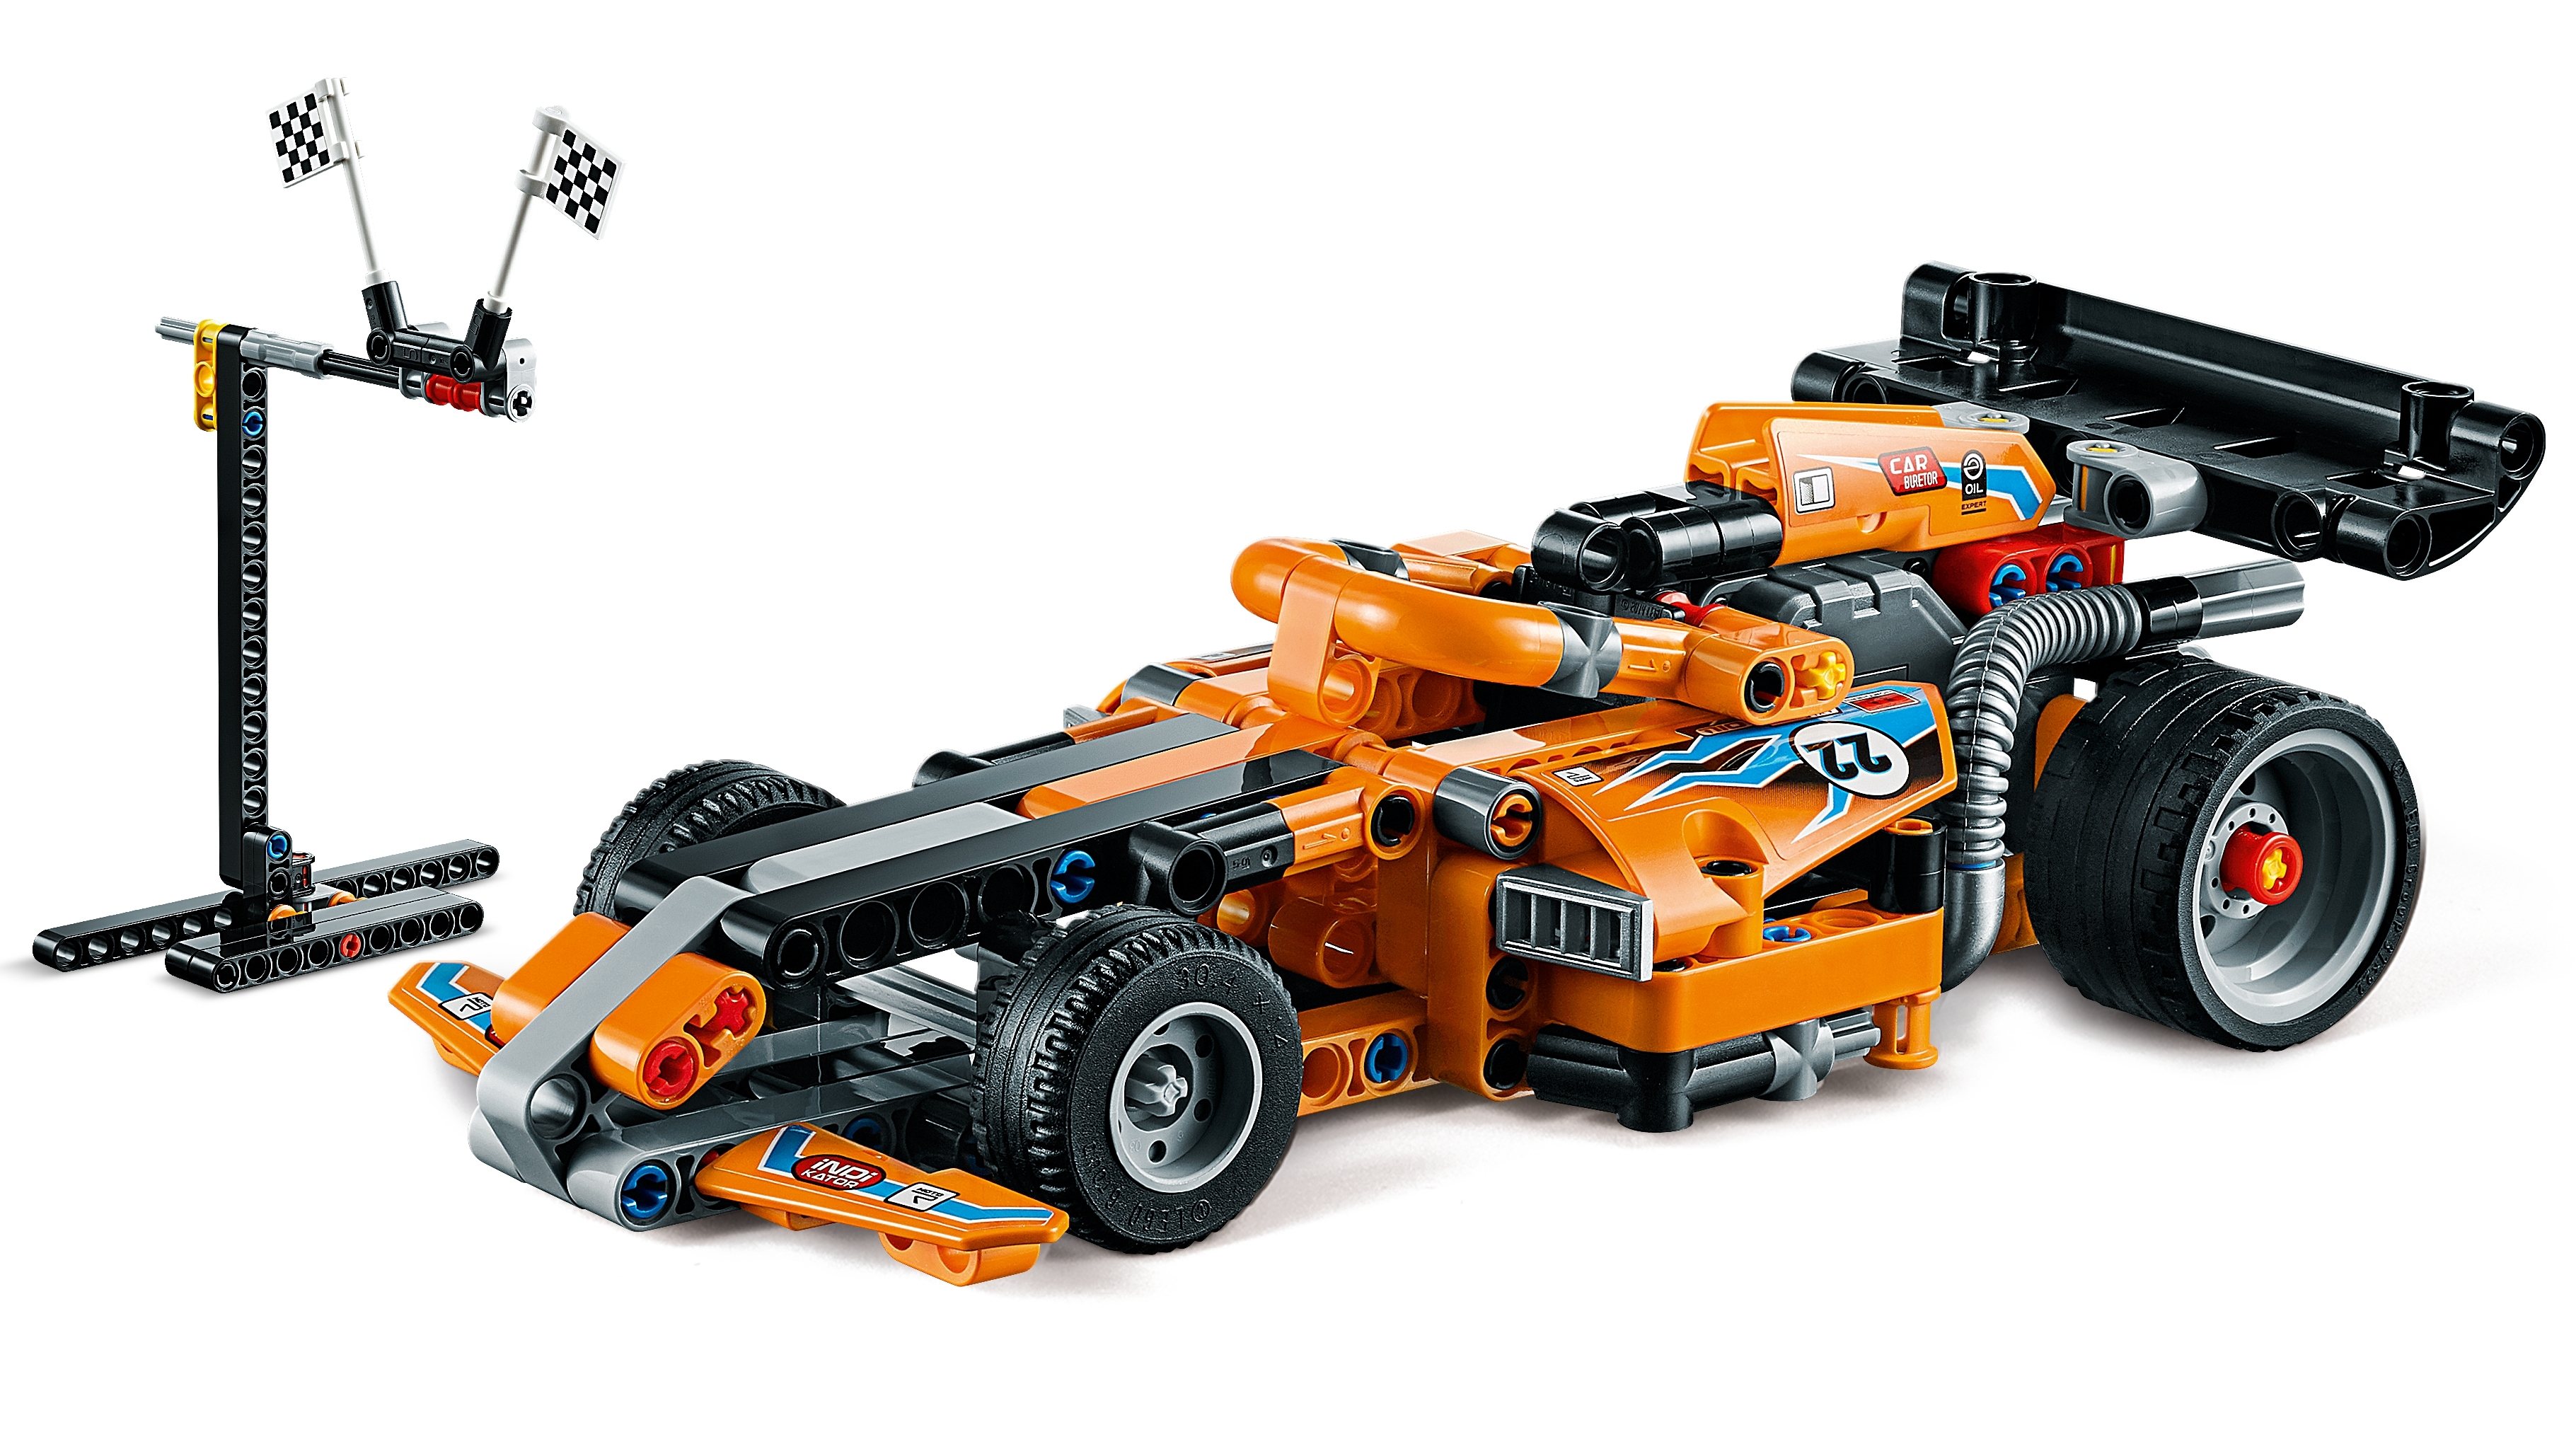 Race Truck 42104   Technic™   Buy online at the Official LEGO® Shop GB